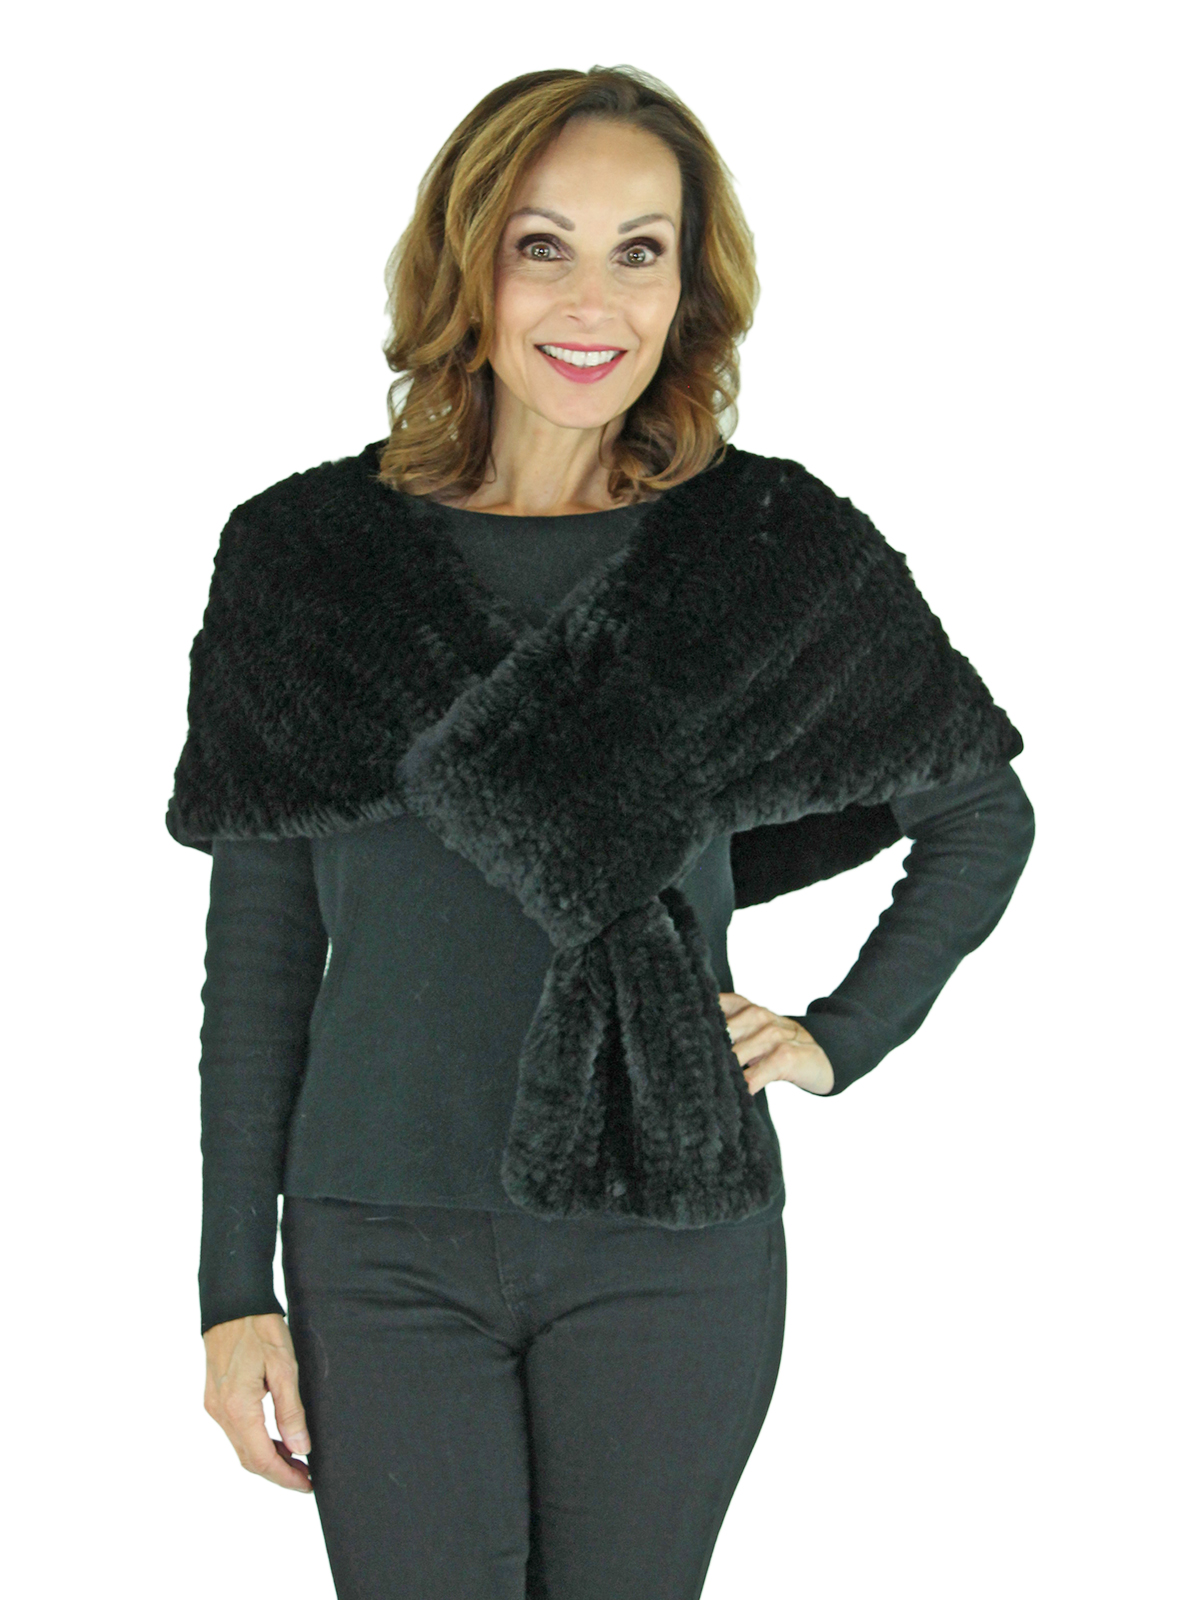 Woman's Black Knitted Rex Rabbit Fur Stole